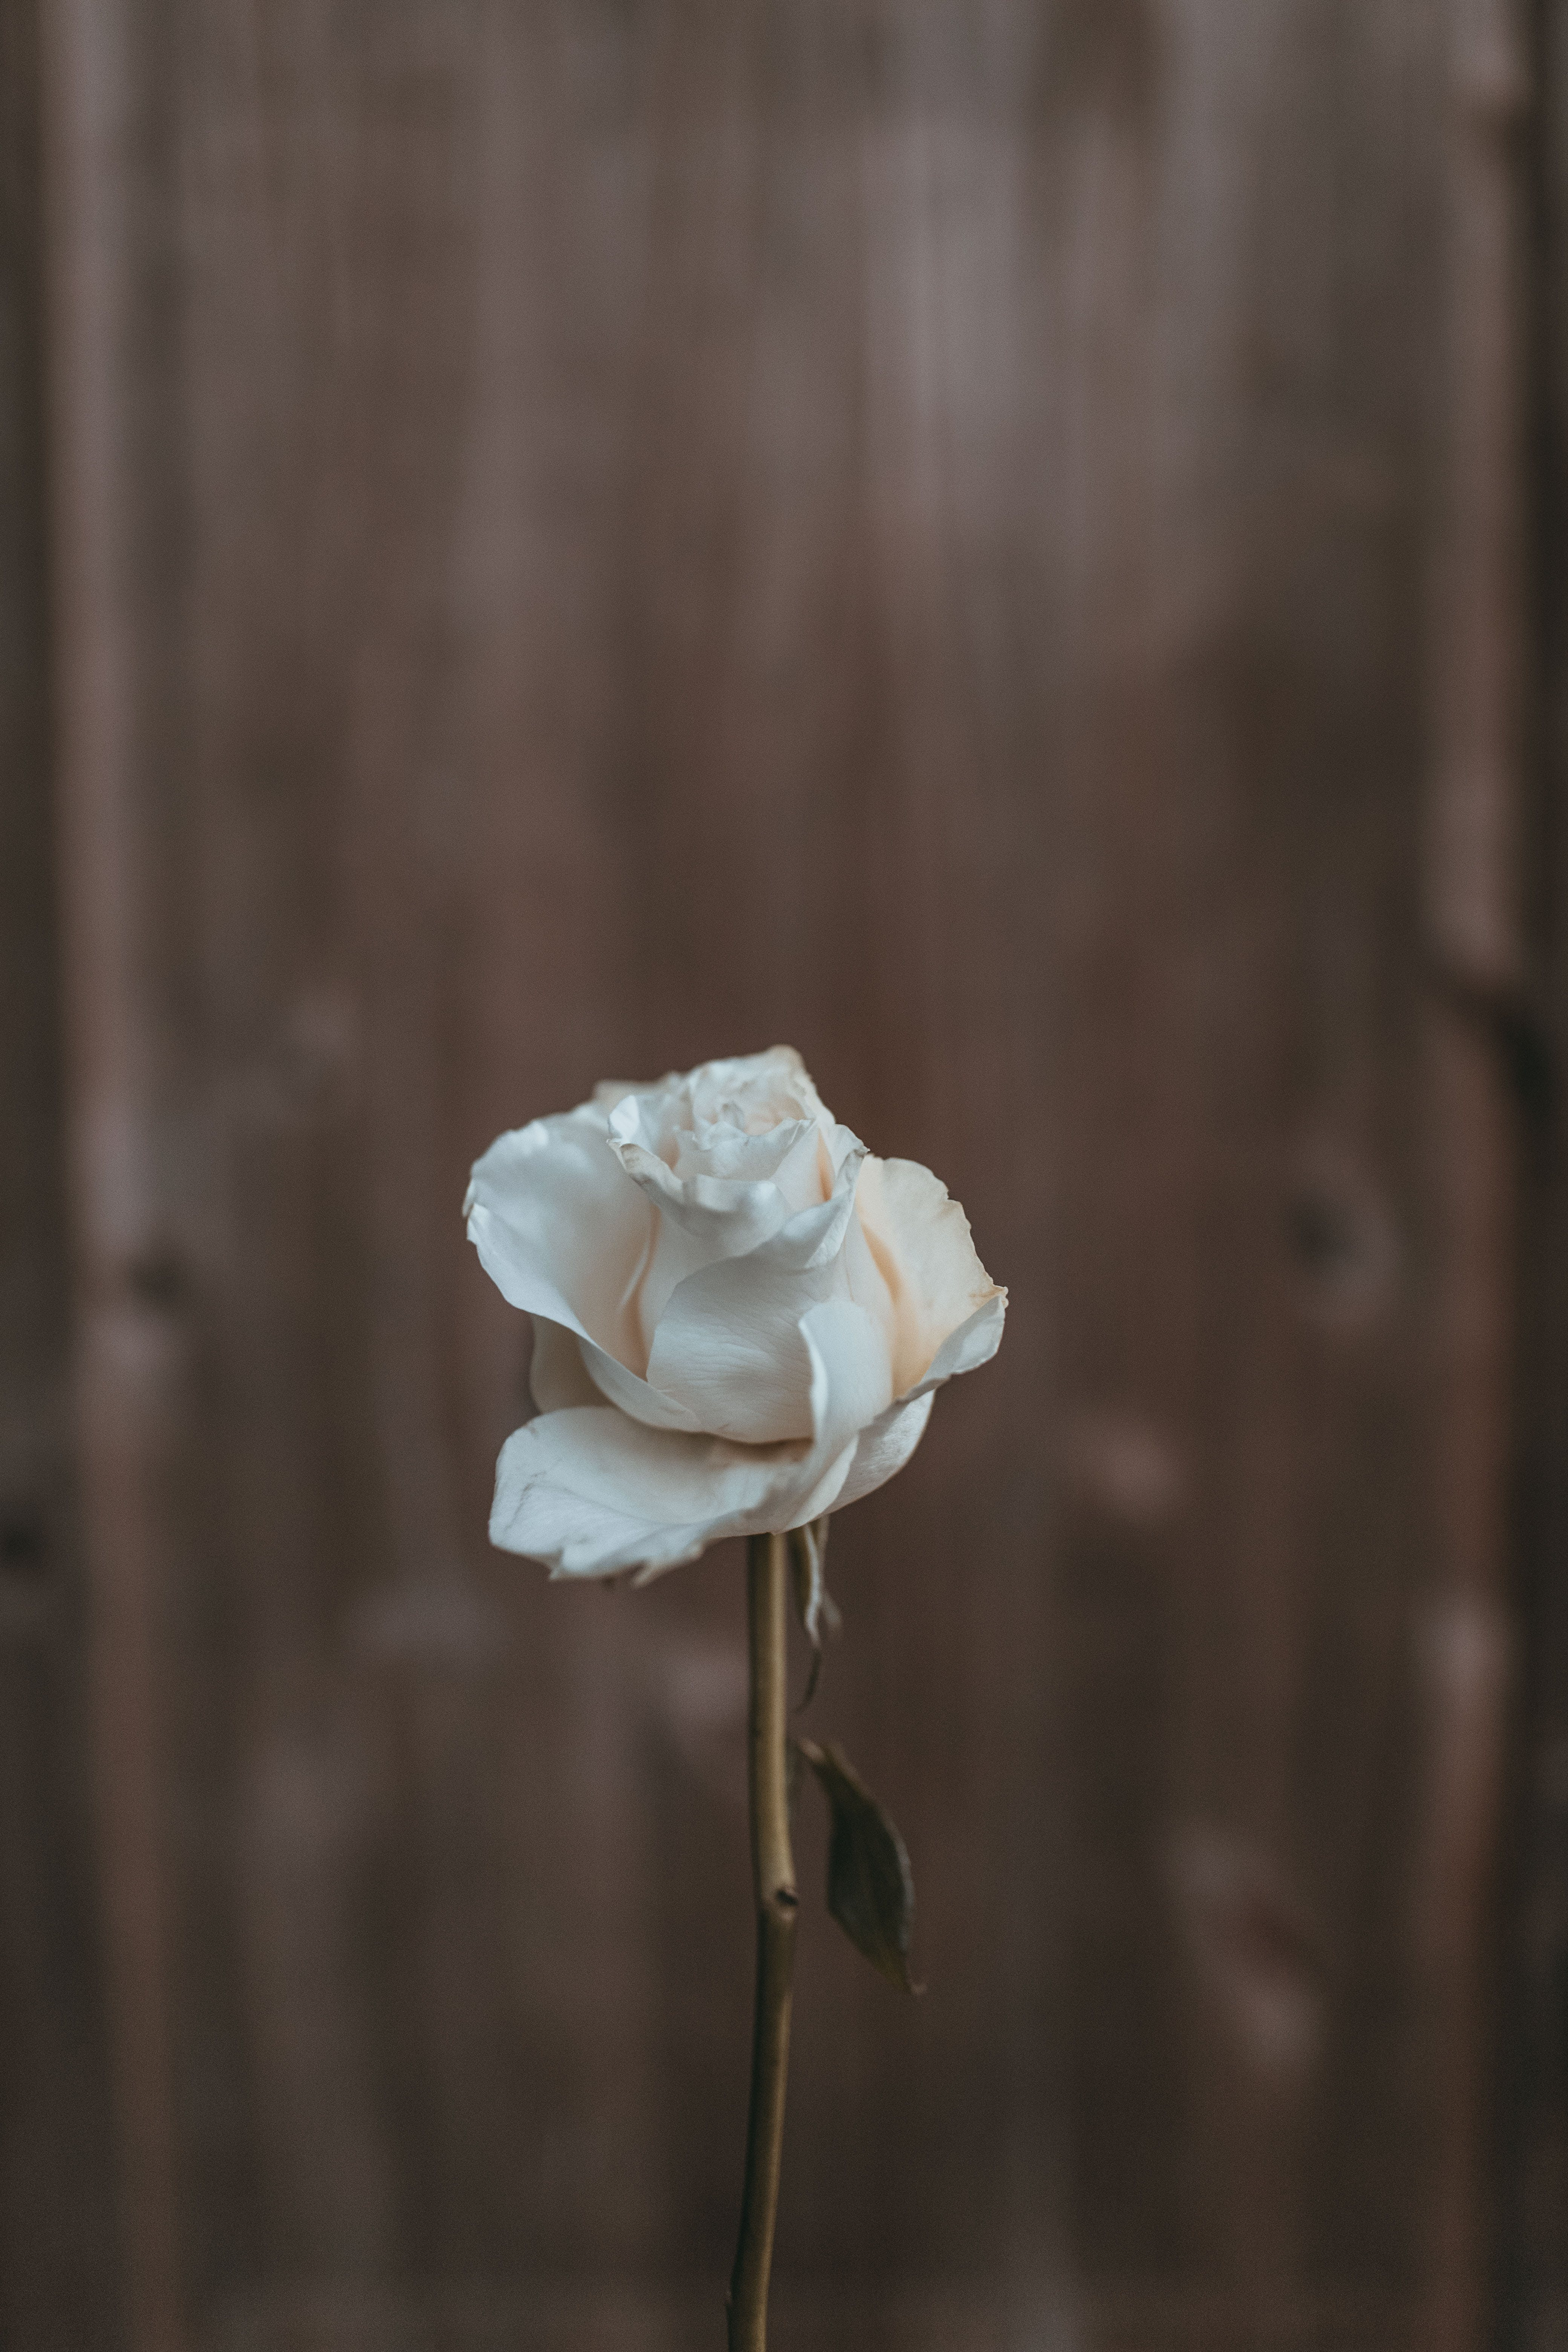 Close Up Photography of White Rose